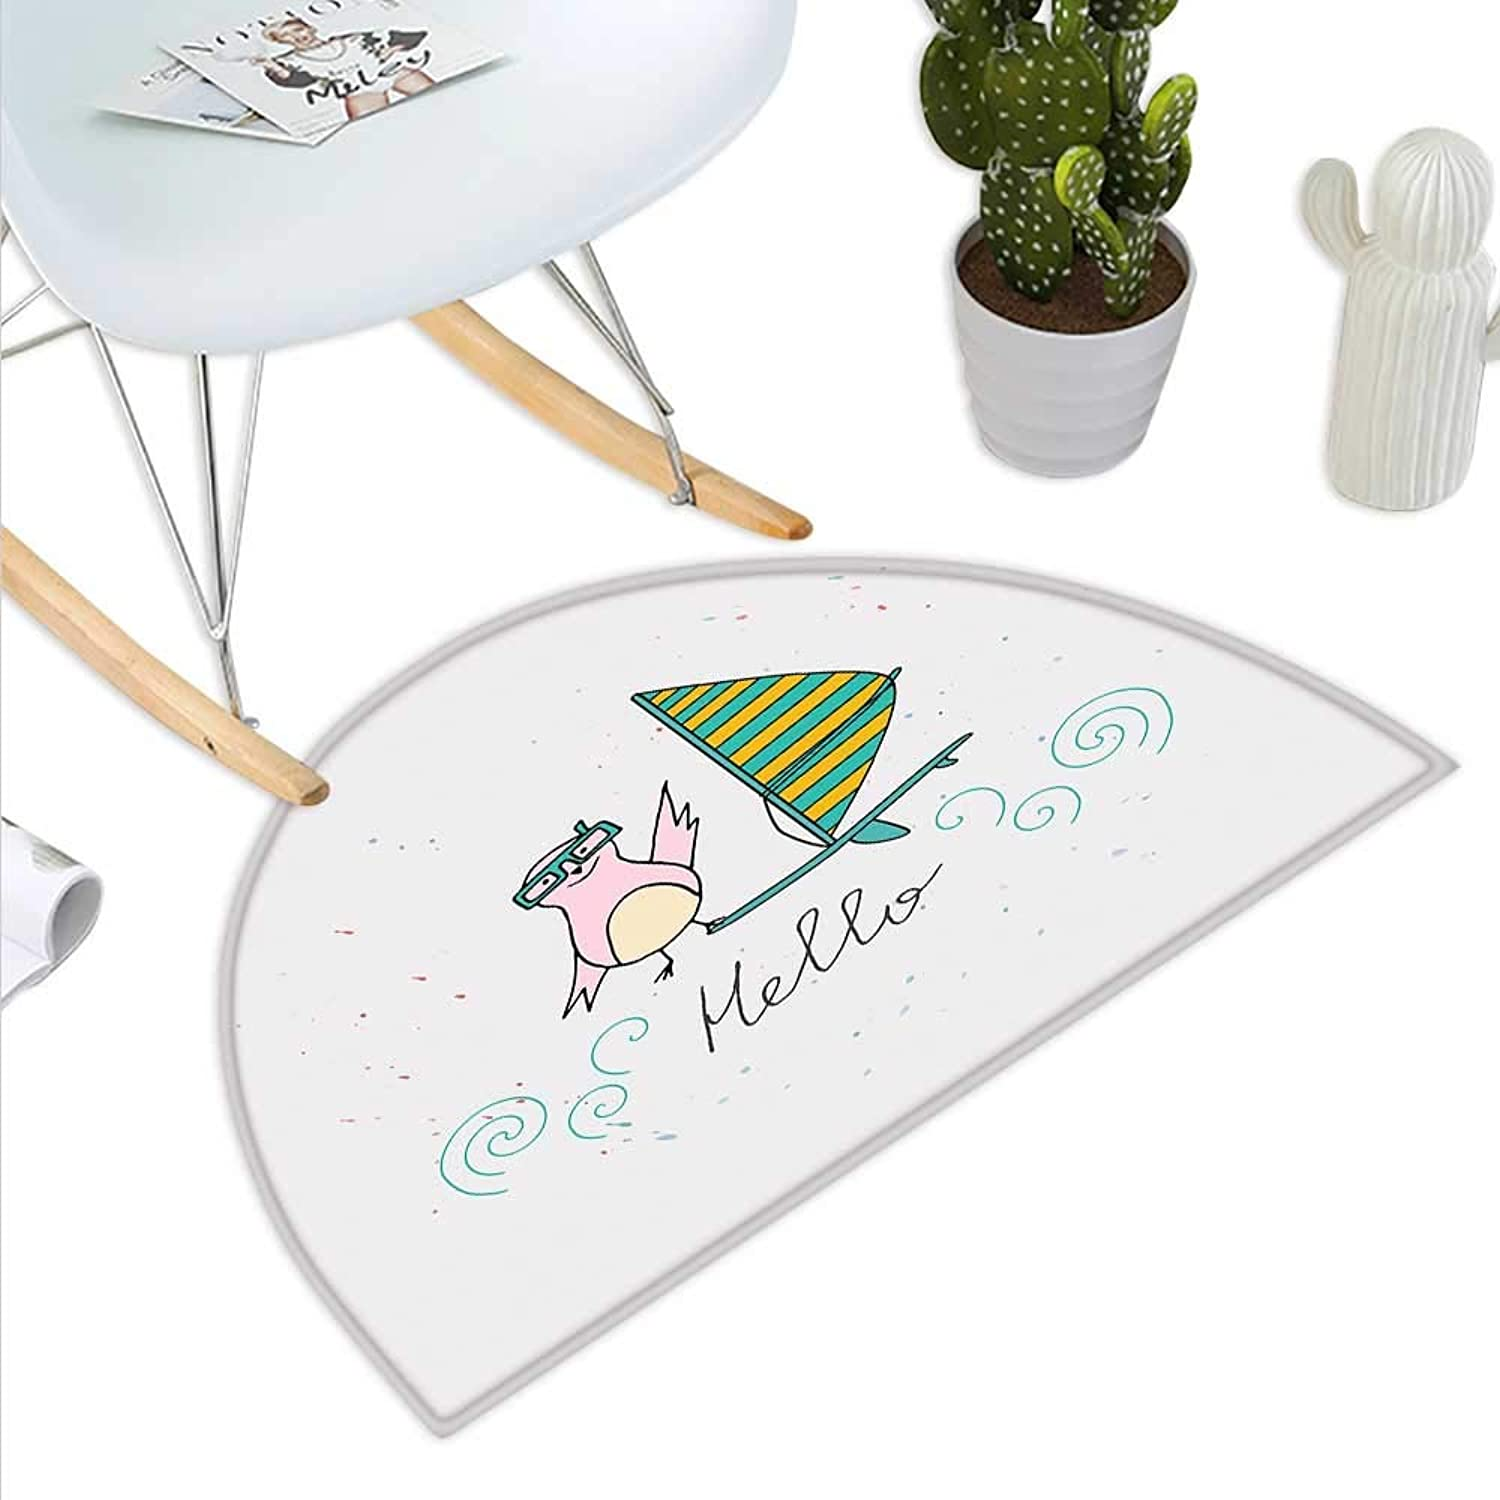 Hello Semicircle Doormat Summer Inspiration with Hand Drawn Bird and Windsurf Board Cartoon Style Halfmoon doormats H 43.3  xD 64.9  Mint Green Yellow Pink